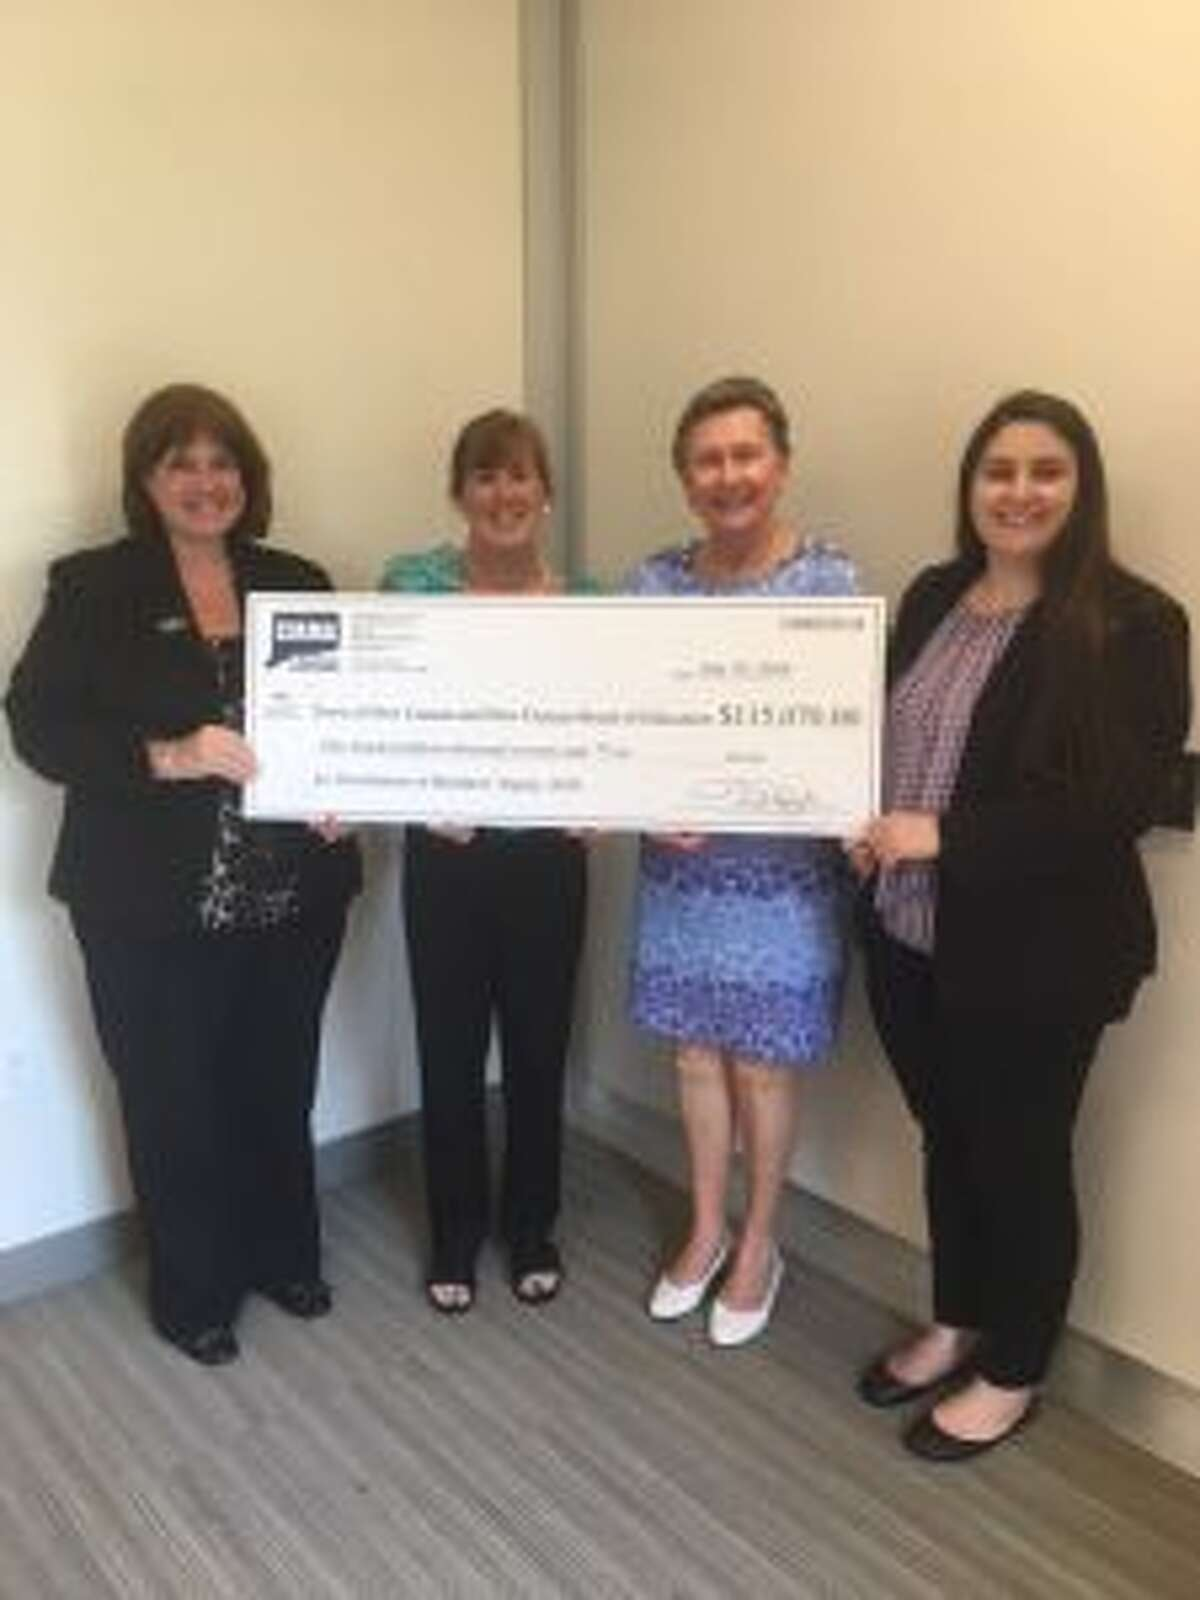 An insurer has delivered $115,000 to Town executives in New Canaan. From left, Colleen White, senior underwriter; Cheryl Jones, Town of New Canaan Human Resources director; Sandra Dennies, Town of New Canaan CFO and Mallory Monaco, underwriter trainee. - Contributed Photo